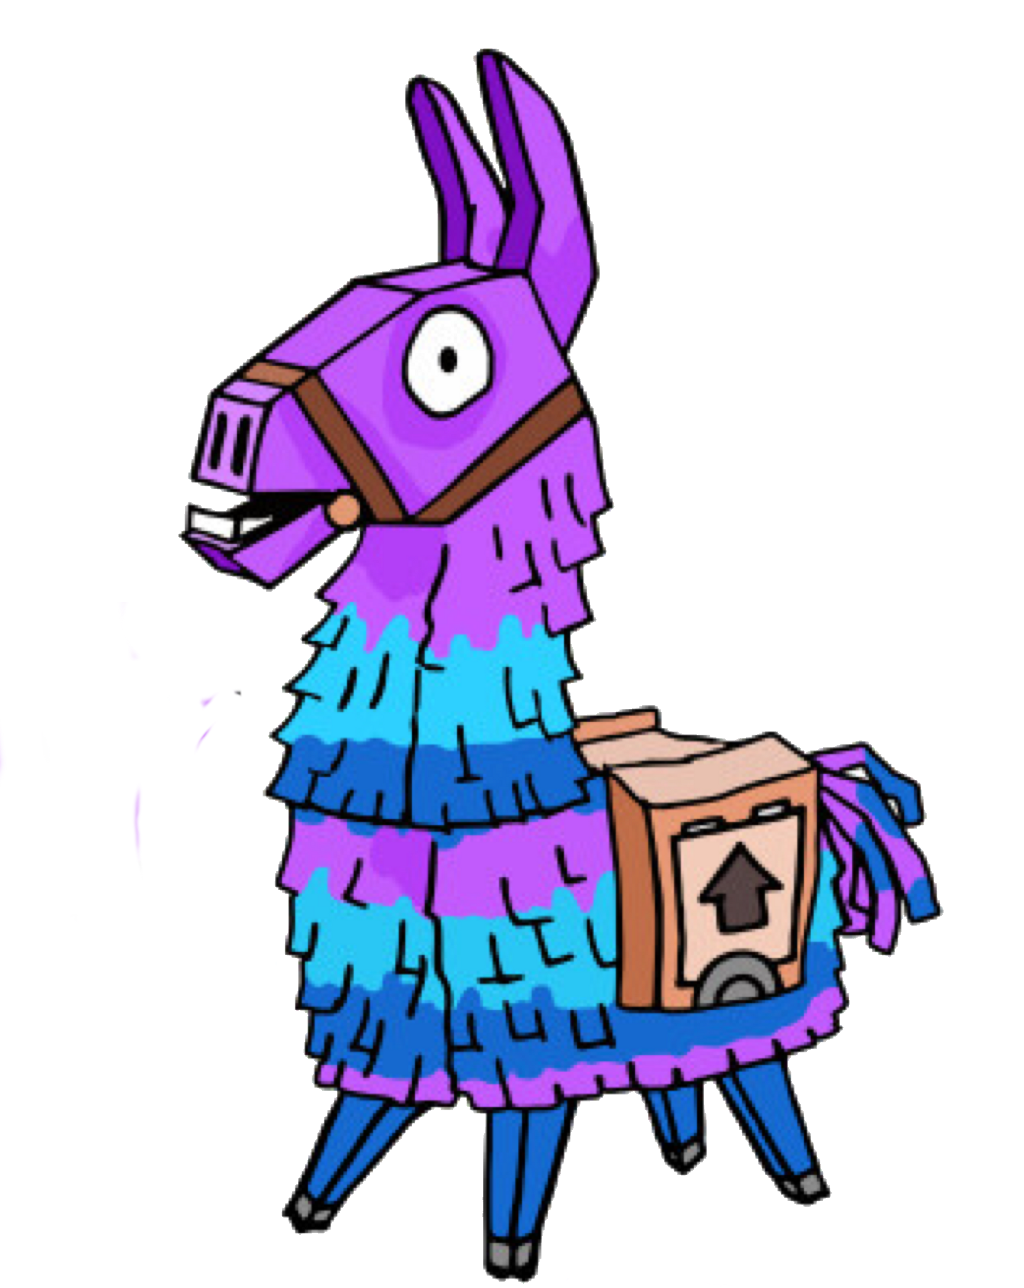 Loot from lootllama fornit. Fortnite llama png transparent library